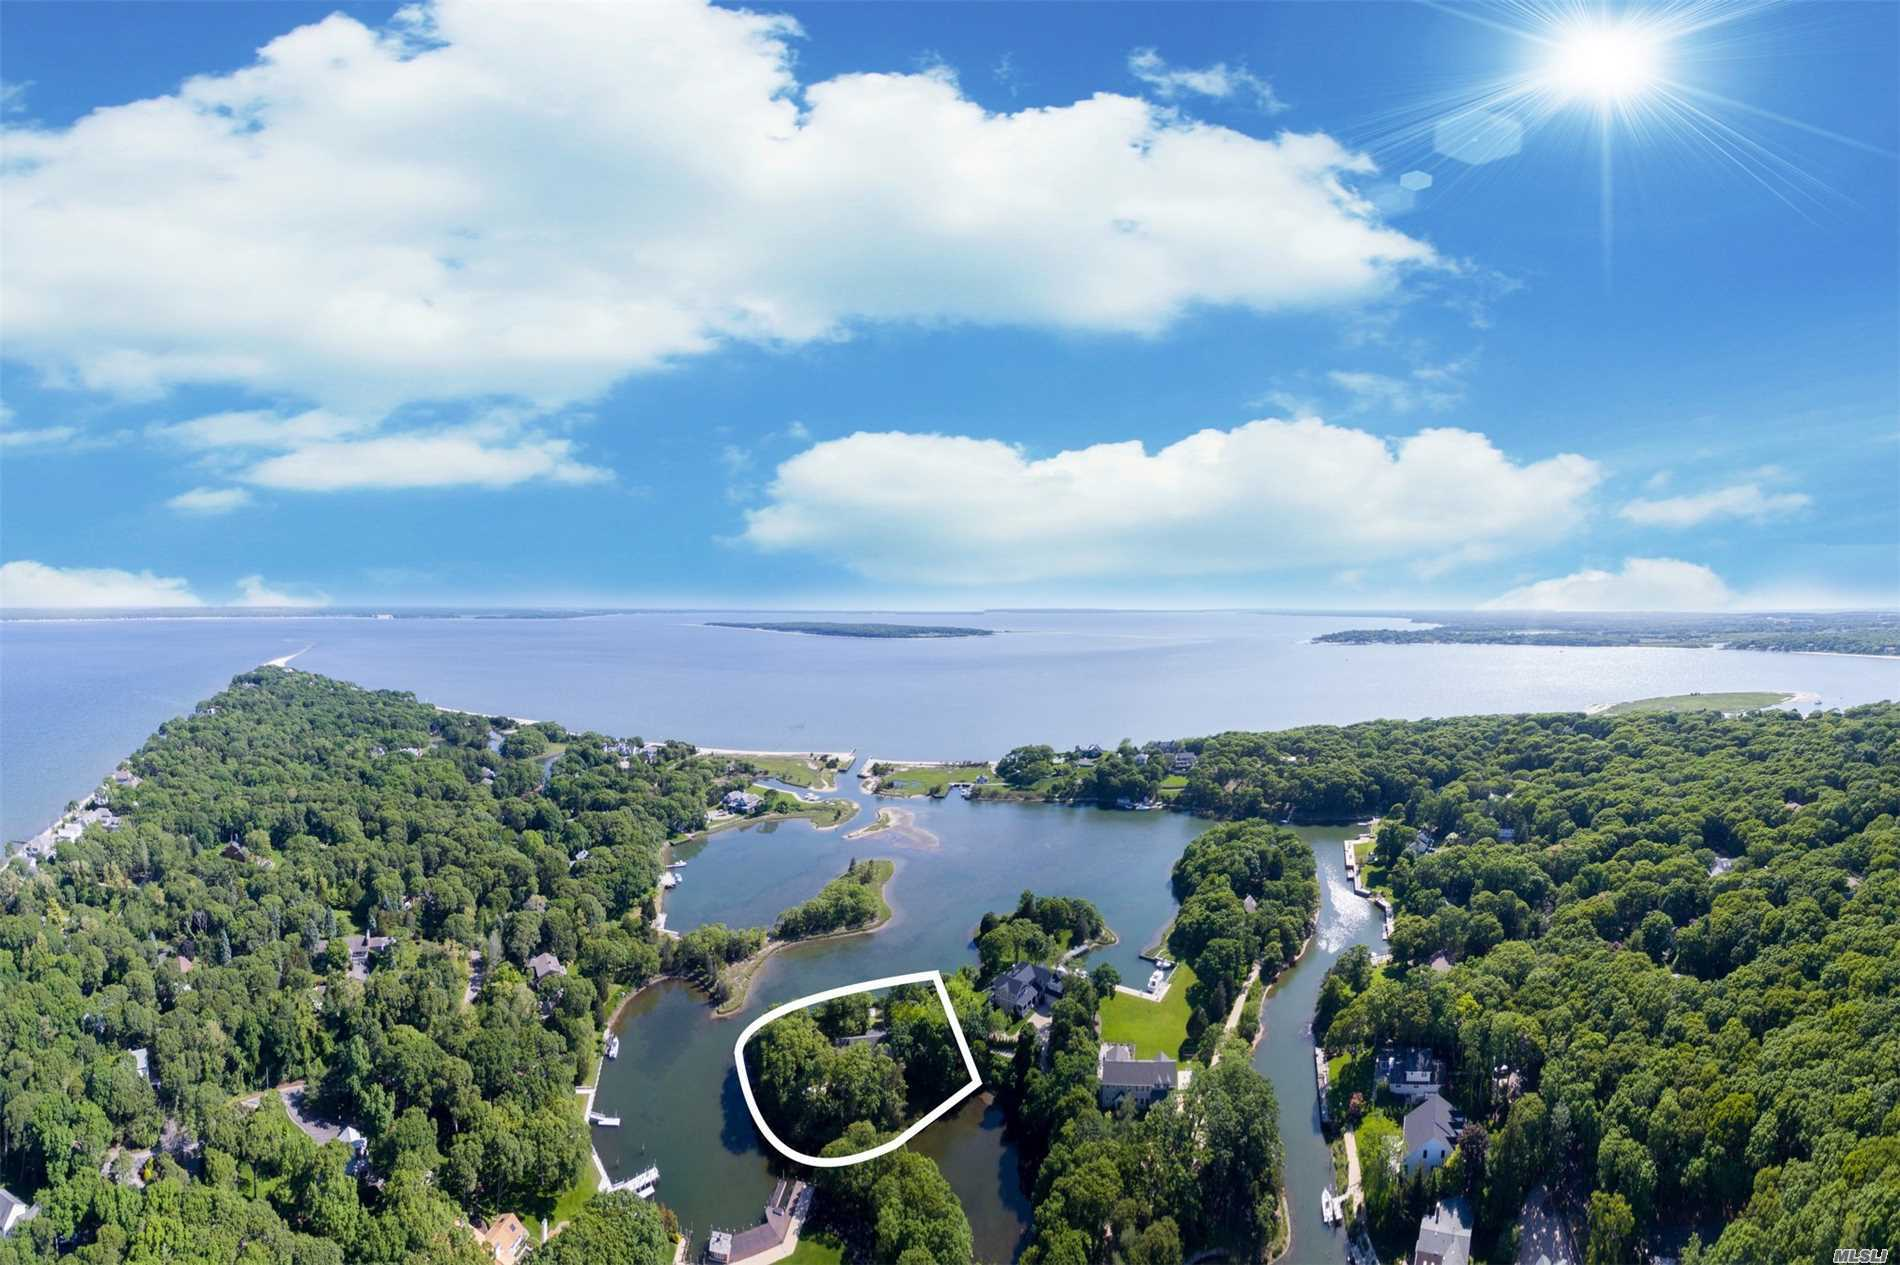 Private Peninsula On Nassau Point, 645Ft. Of Protected Waterfront On Wunneweta Pond With A Deeded Dock And Big Views Of Great Peconic Bay And Robins Island. Sprawling 3-Bed, 2.5-Bath Mid-Century Ranch. X-Large Living Room, Sun Room With Brick Floors, And Two Wbf. An Incredible Piece Of Property Ready For A Reno Or Rebuild, Surrounded By Multi Million Dollar Compounds.